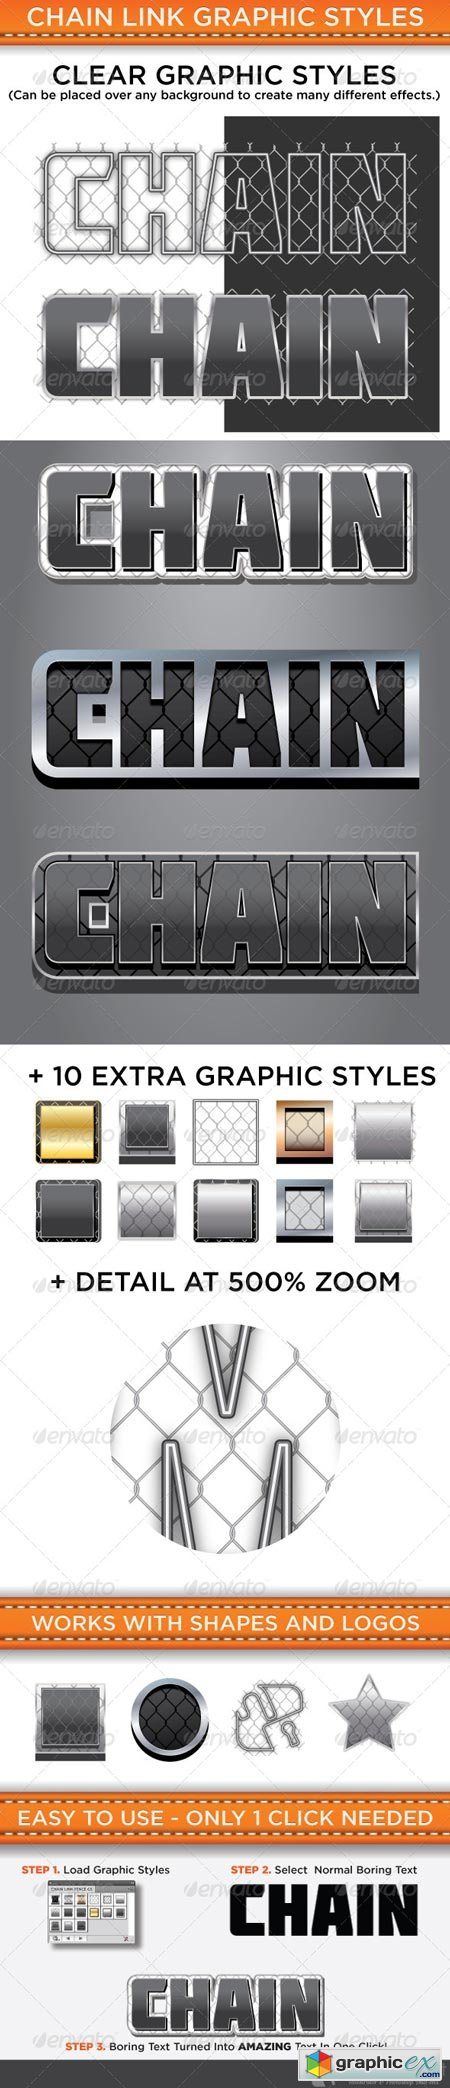 Chain Link Graphic Styles 4623465